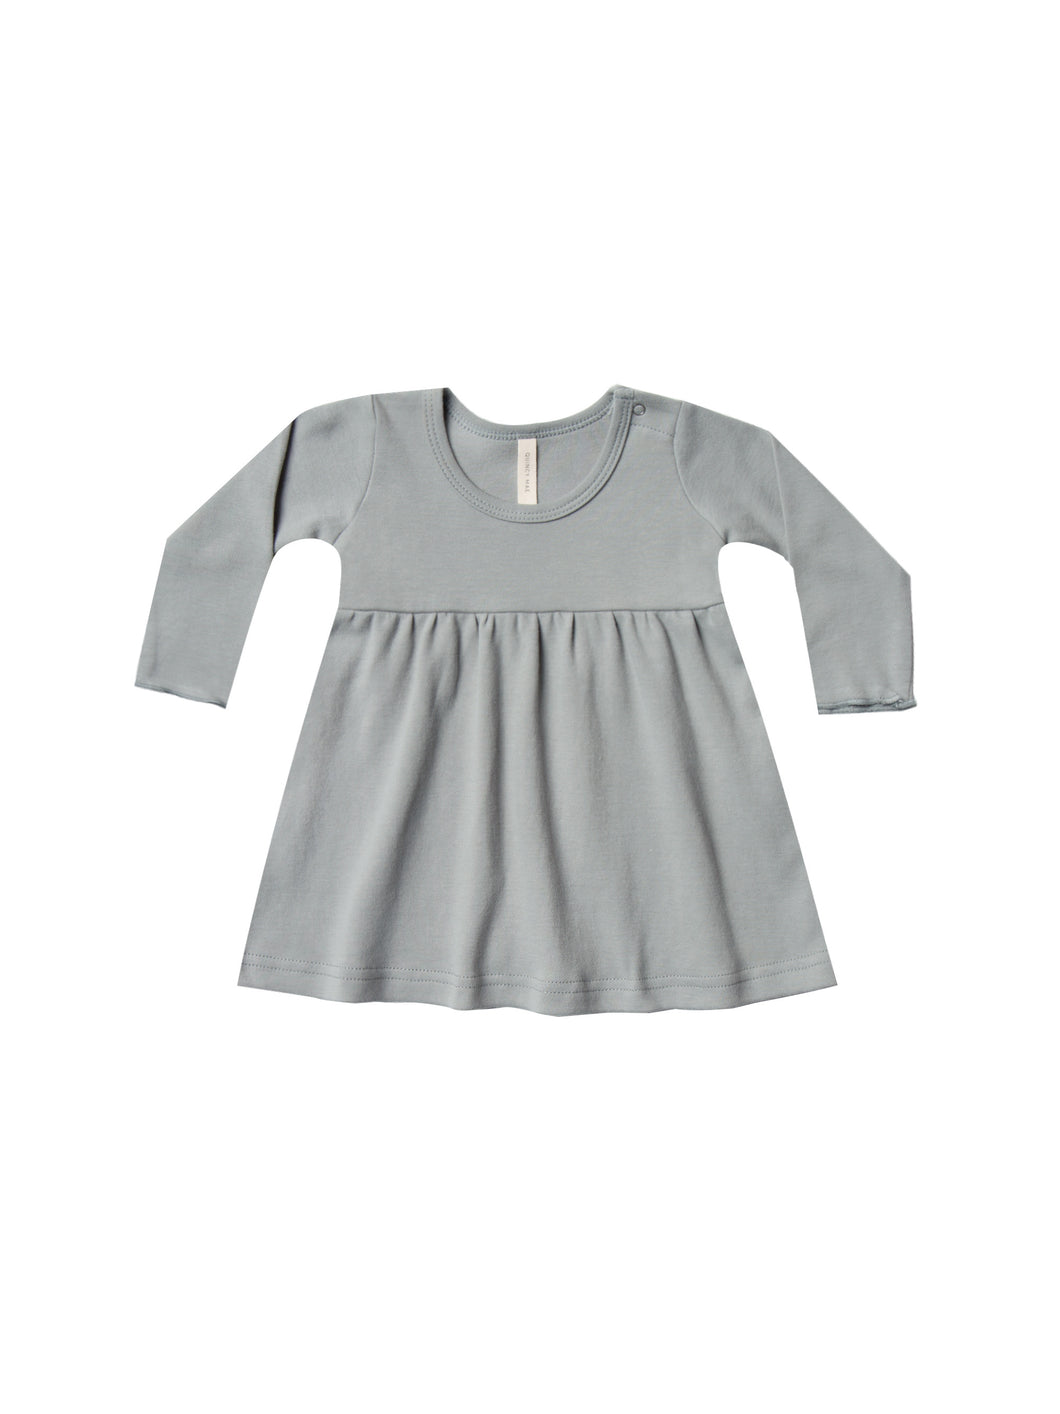 Quincy Mae baby dress - dusty blue